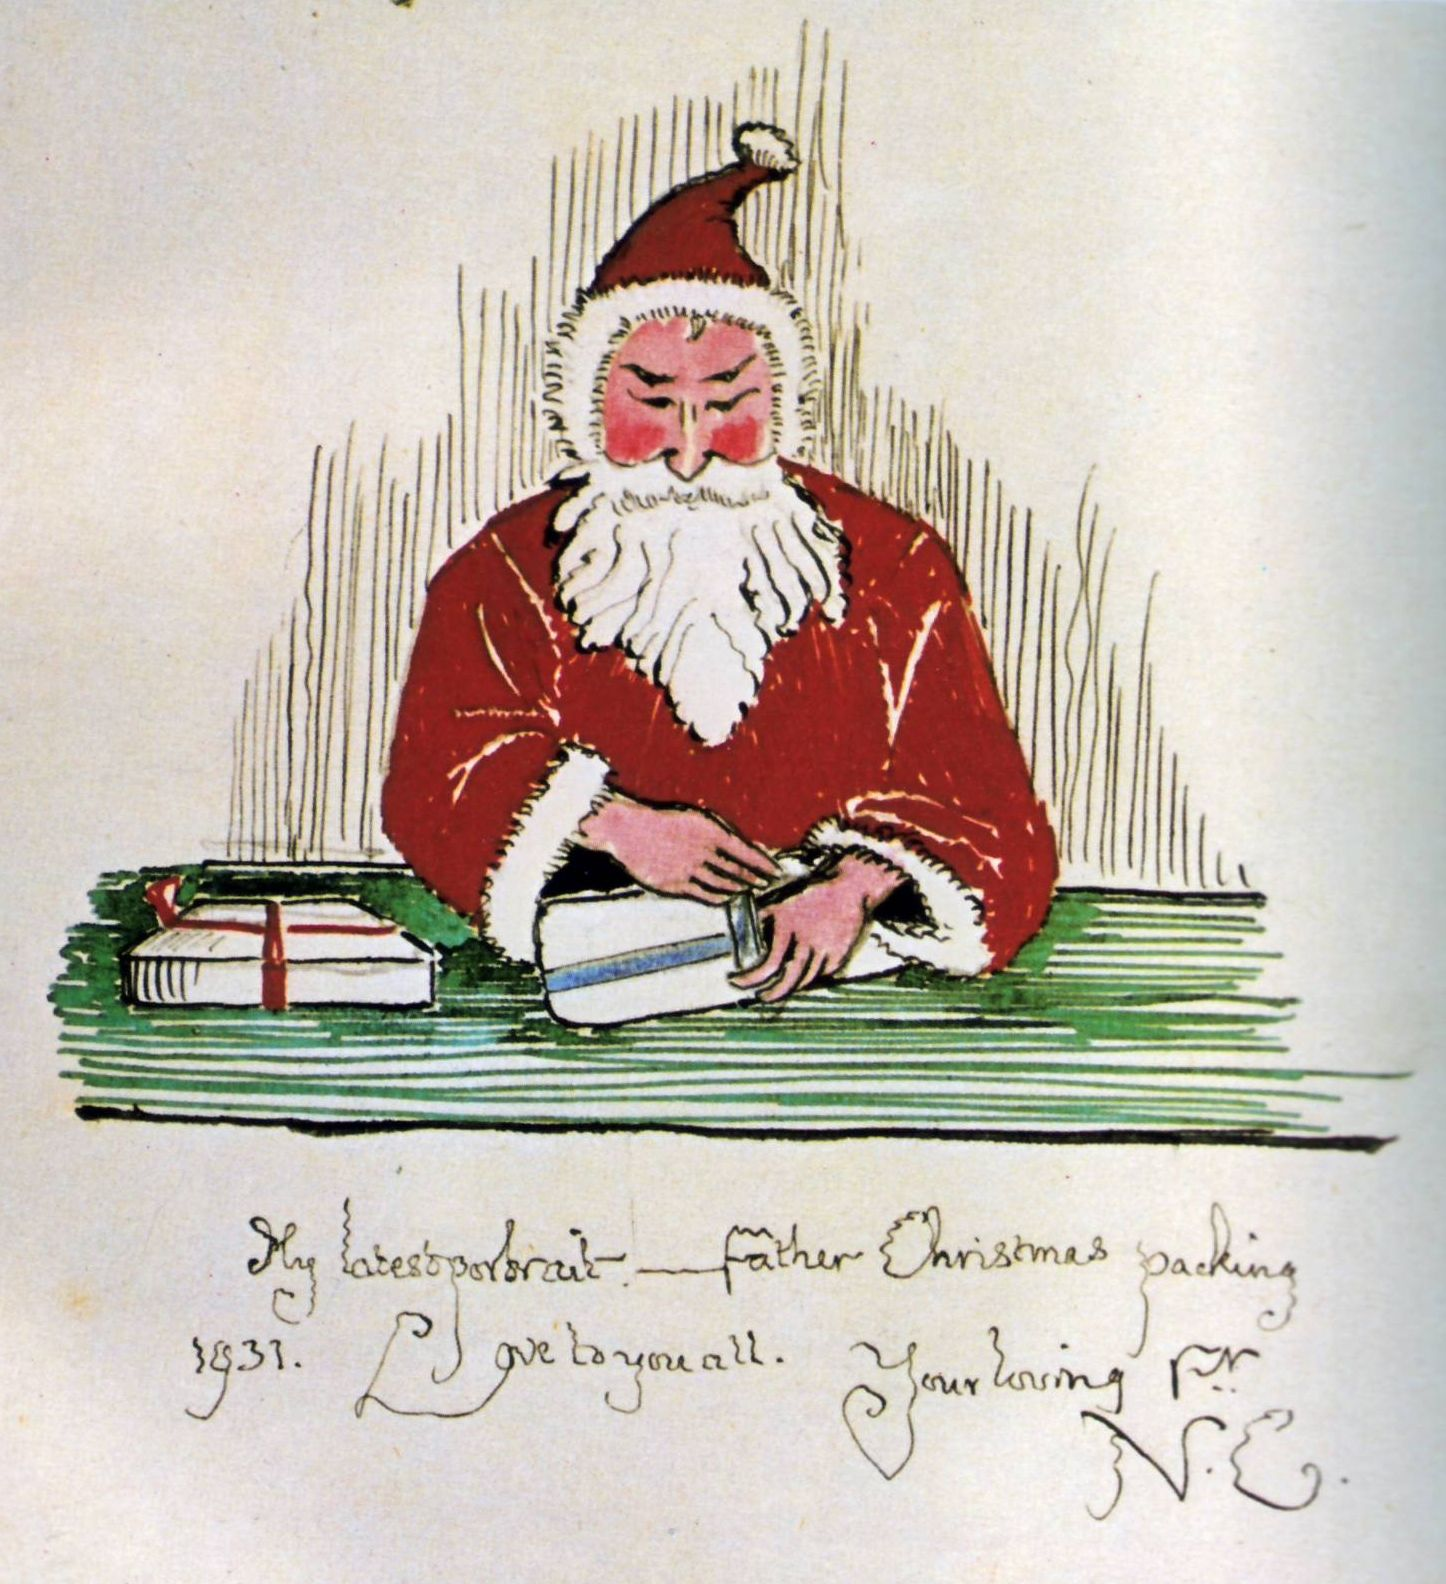 Jrr tolkien father christmas 1931 tolkien illustrations 1931 letter from j tolkien to his children every year he would send them a letter from father christmas with an accompanying story and illustrations spiritdancerdesigns Gallery